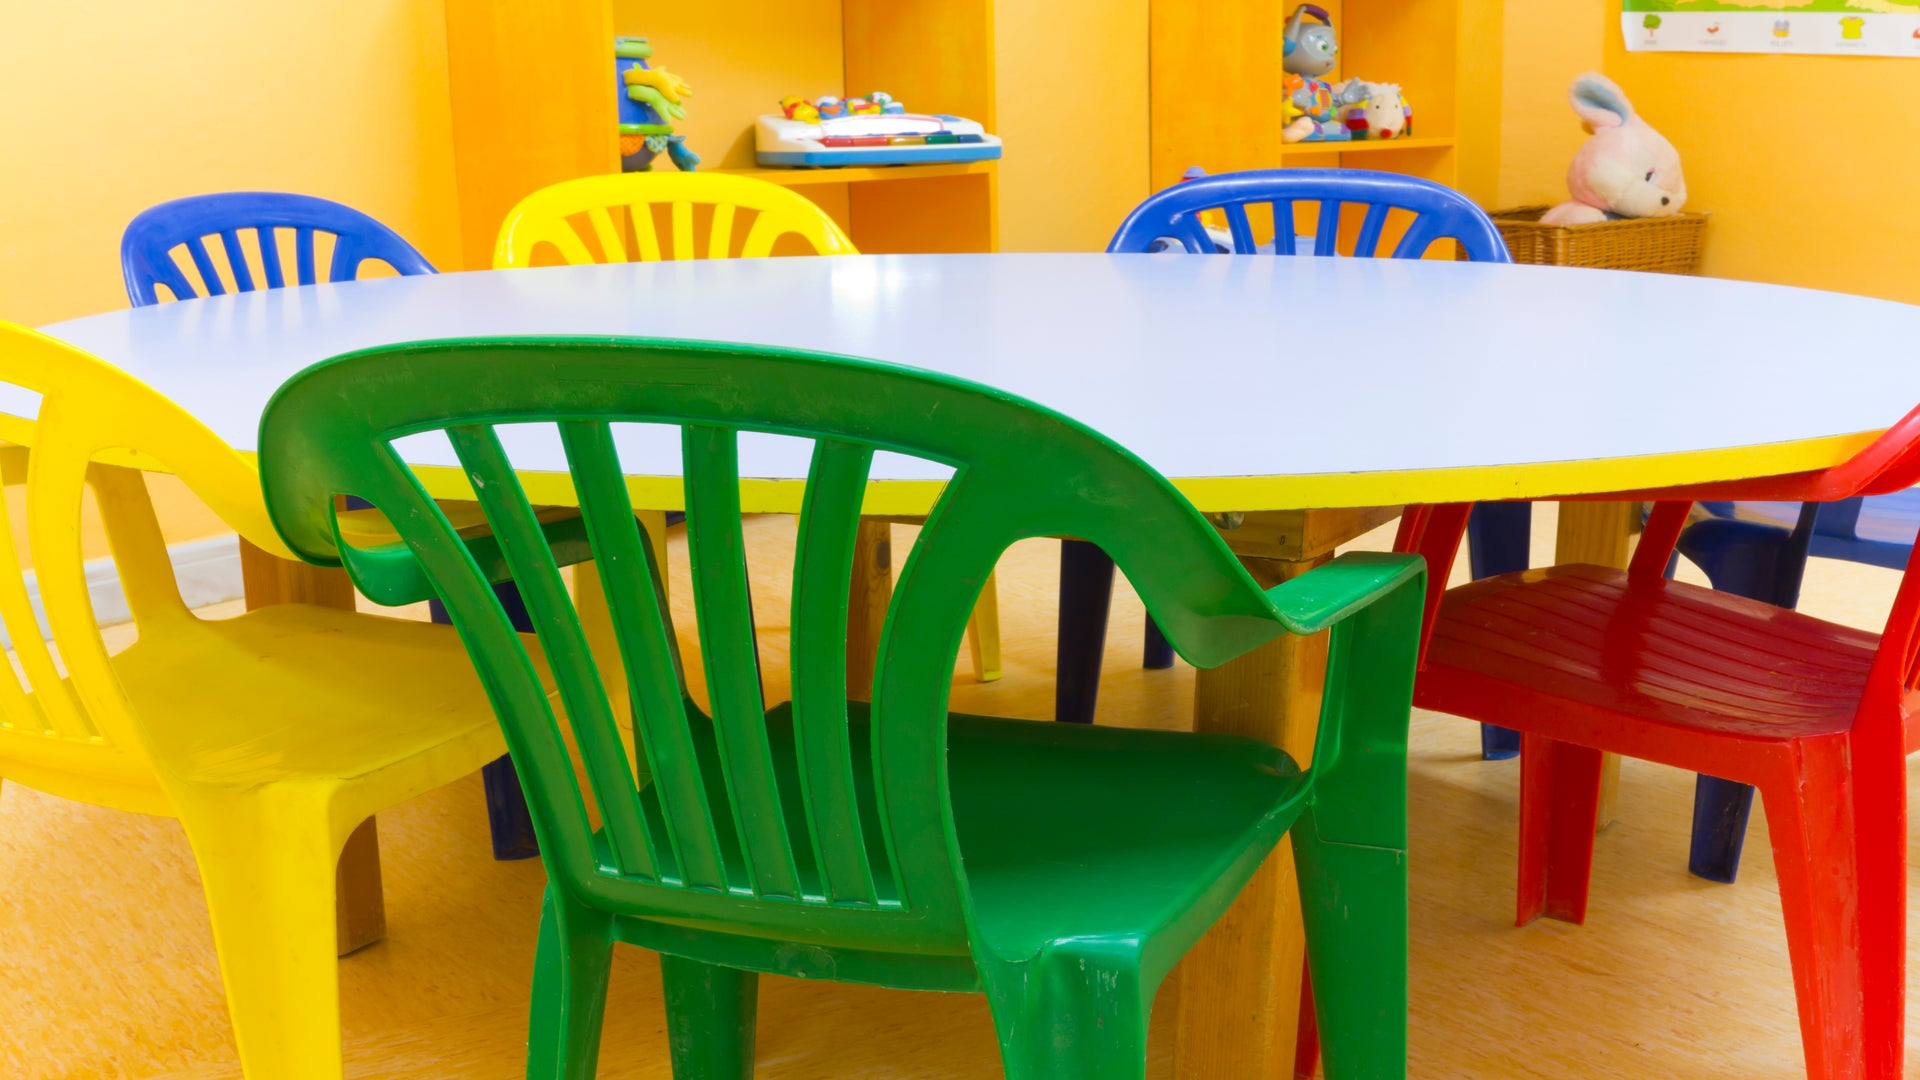 Parents Demand Answers After 4-Year-Old Girl Duct-Taped To A Chair At Daycare